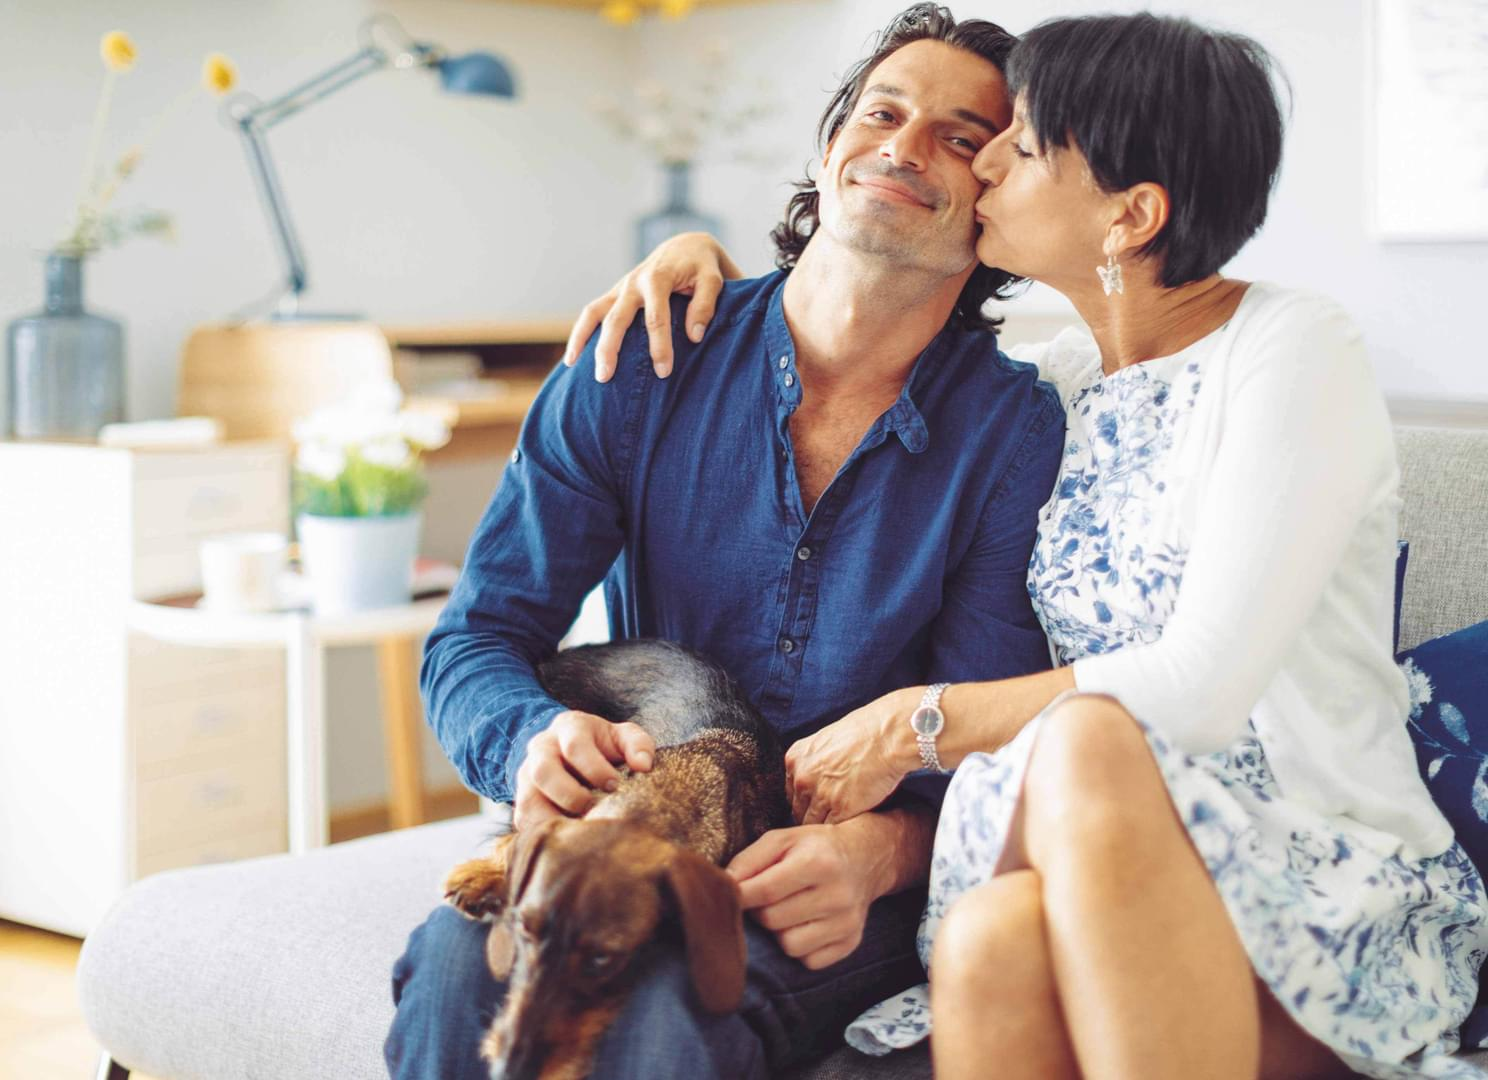 A happy couple confidently sit on their couch with their dog.